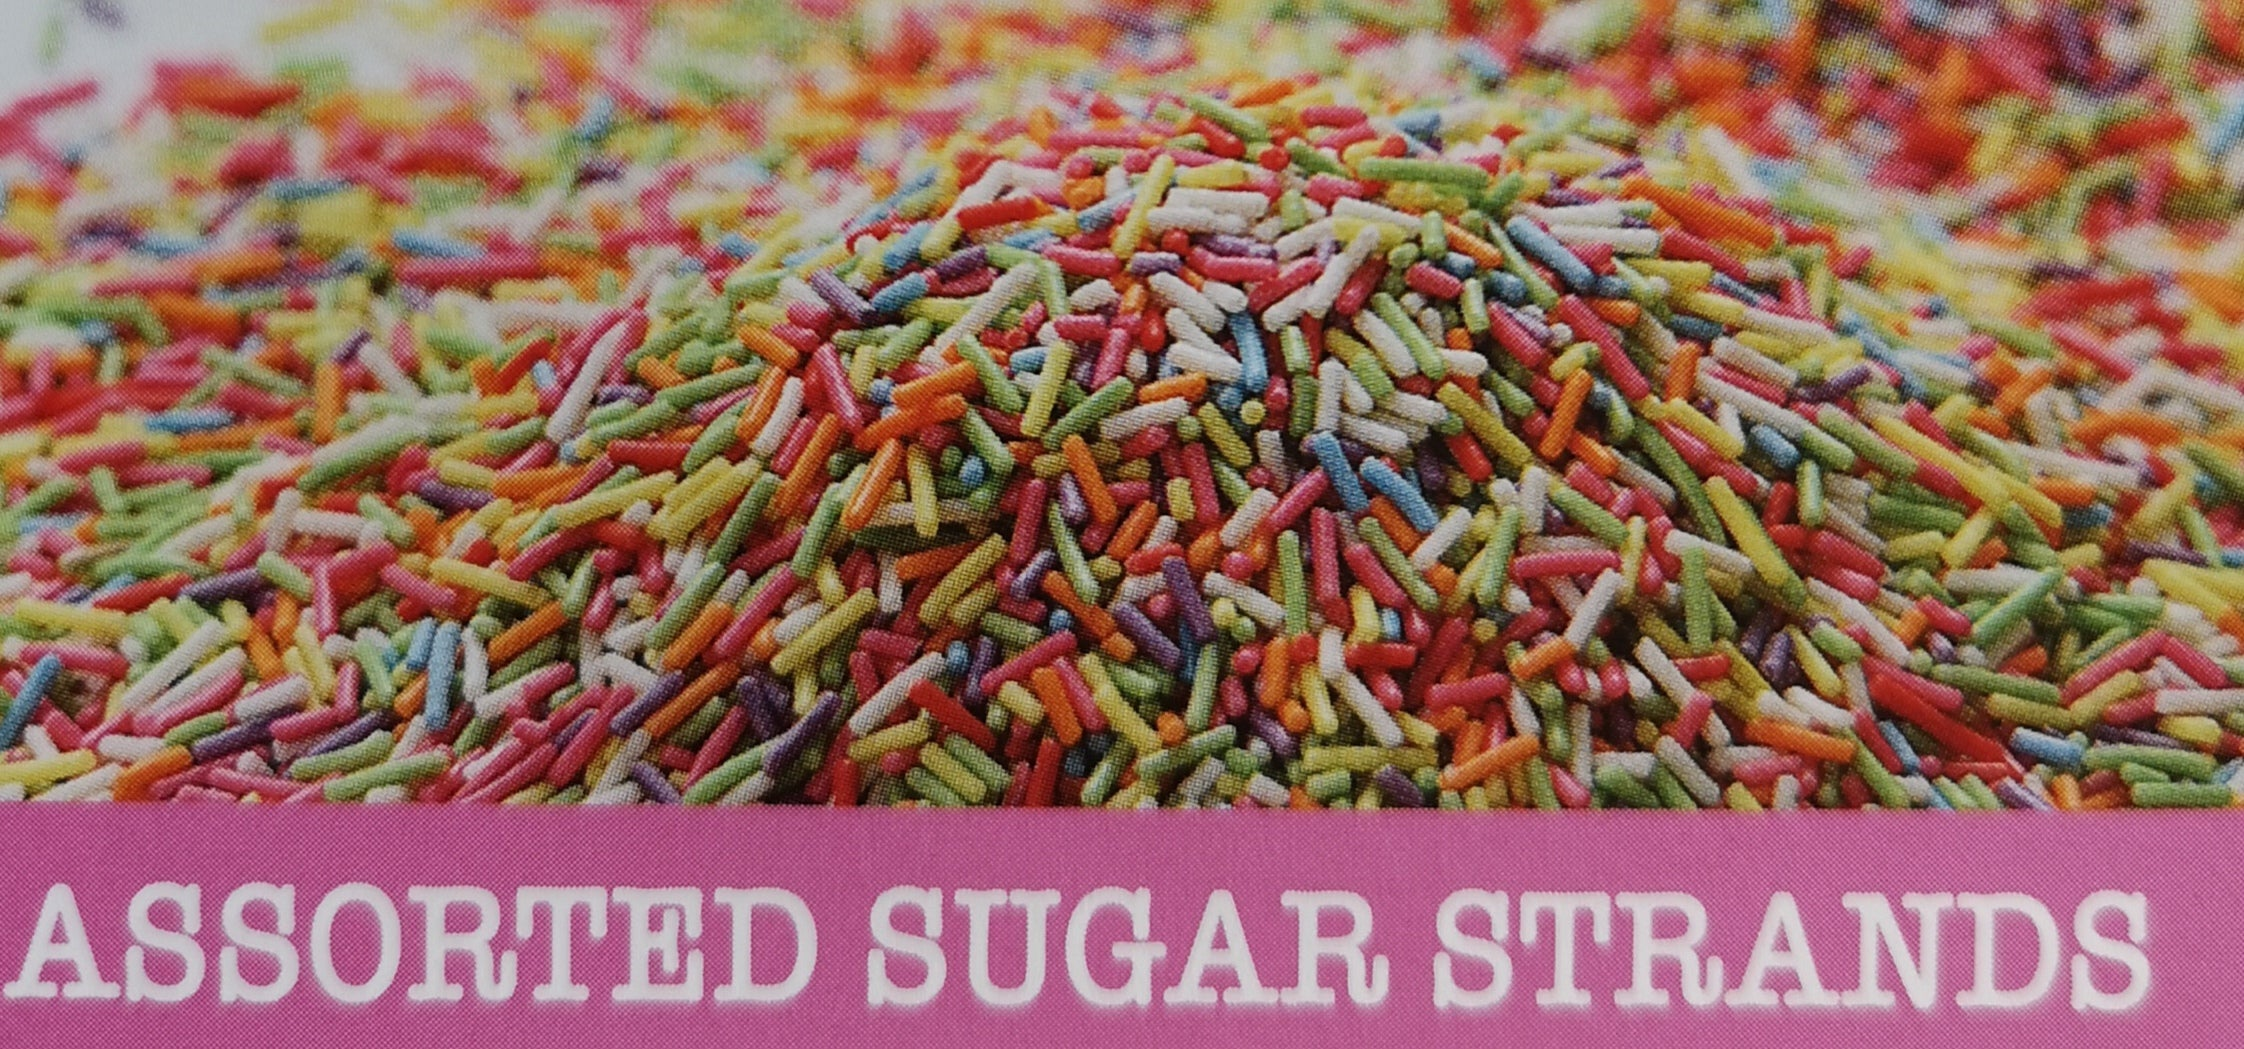 SPR3 - Assorted Sugar Strands 3kg